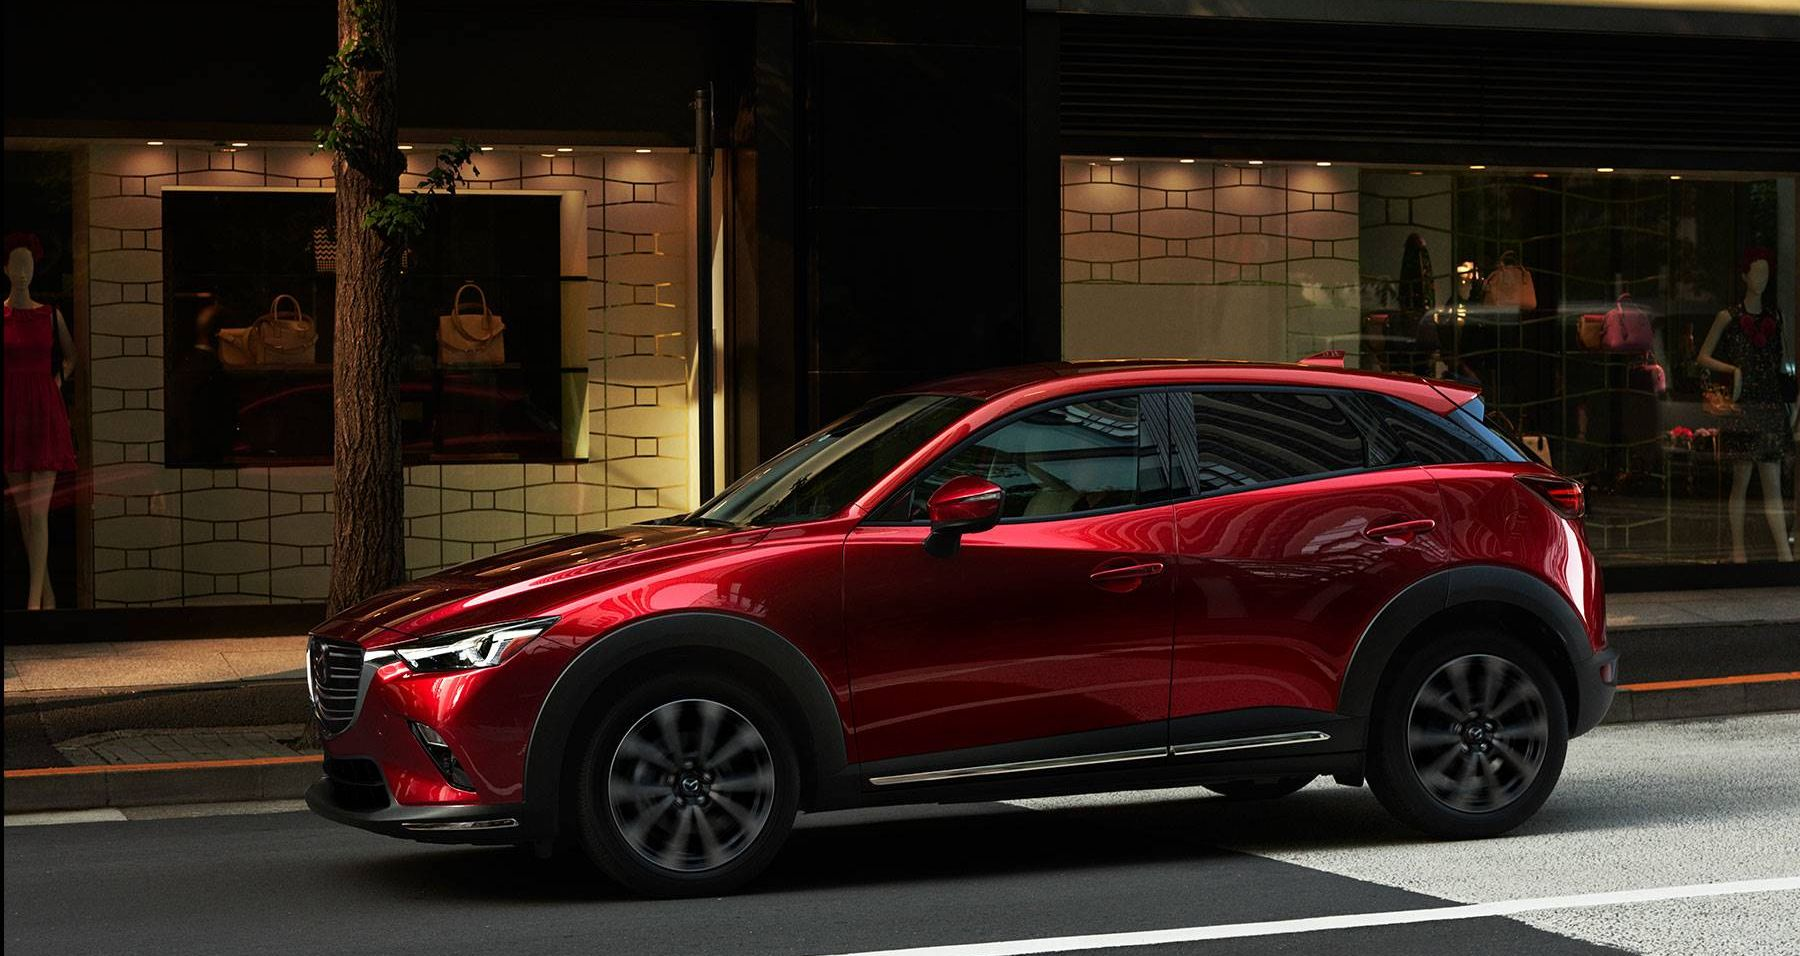 2019 Mazda CX-3 for Sale near Rockville, MD